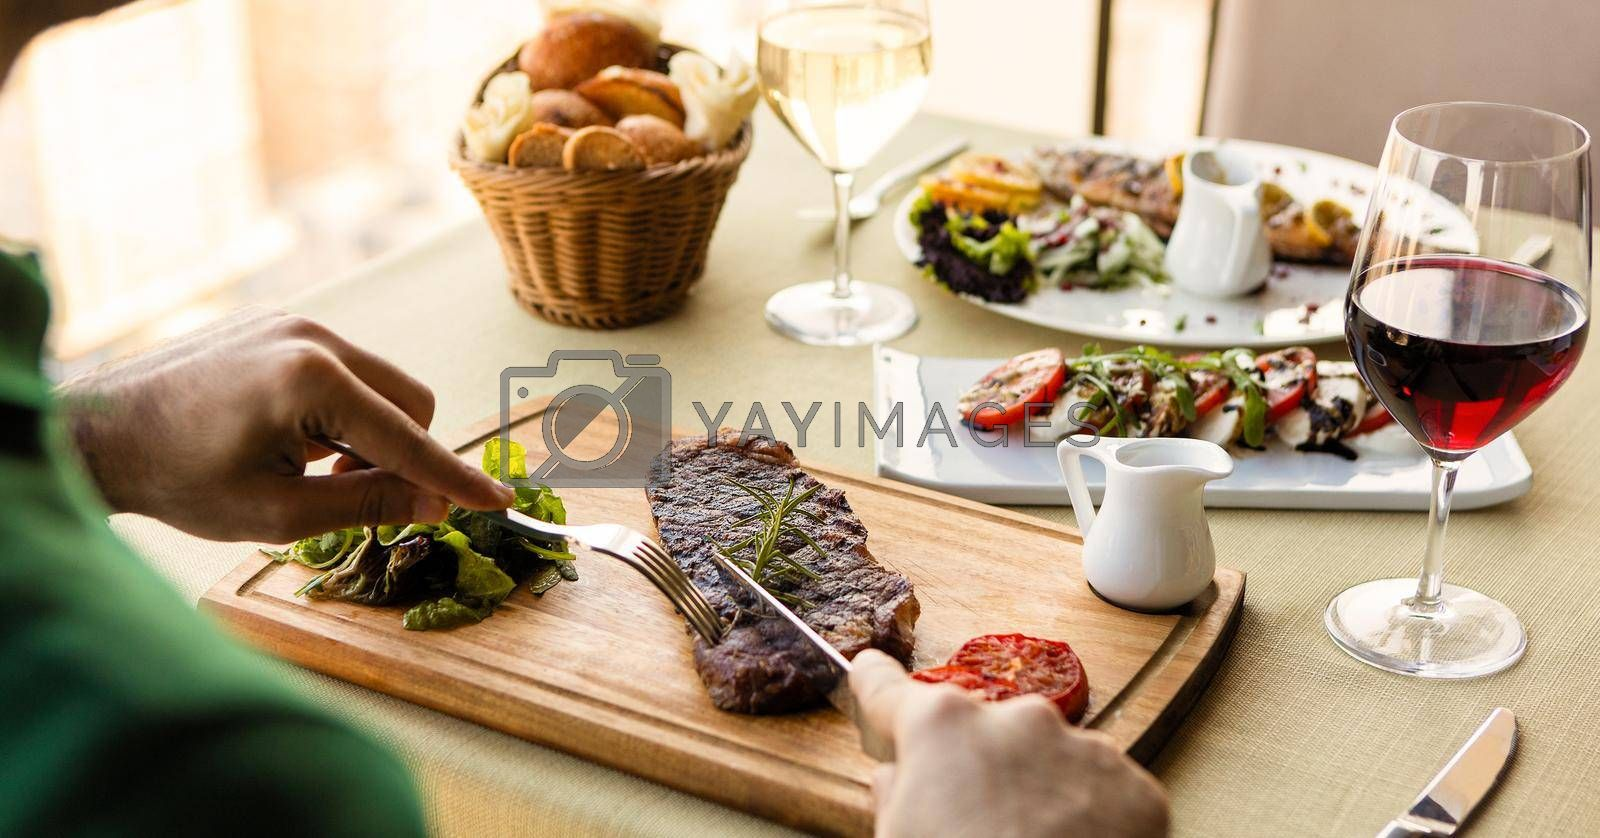 Man cutting tasty steak with sauce, salad on the table